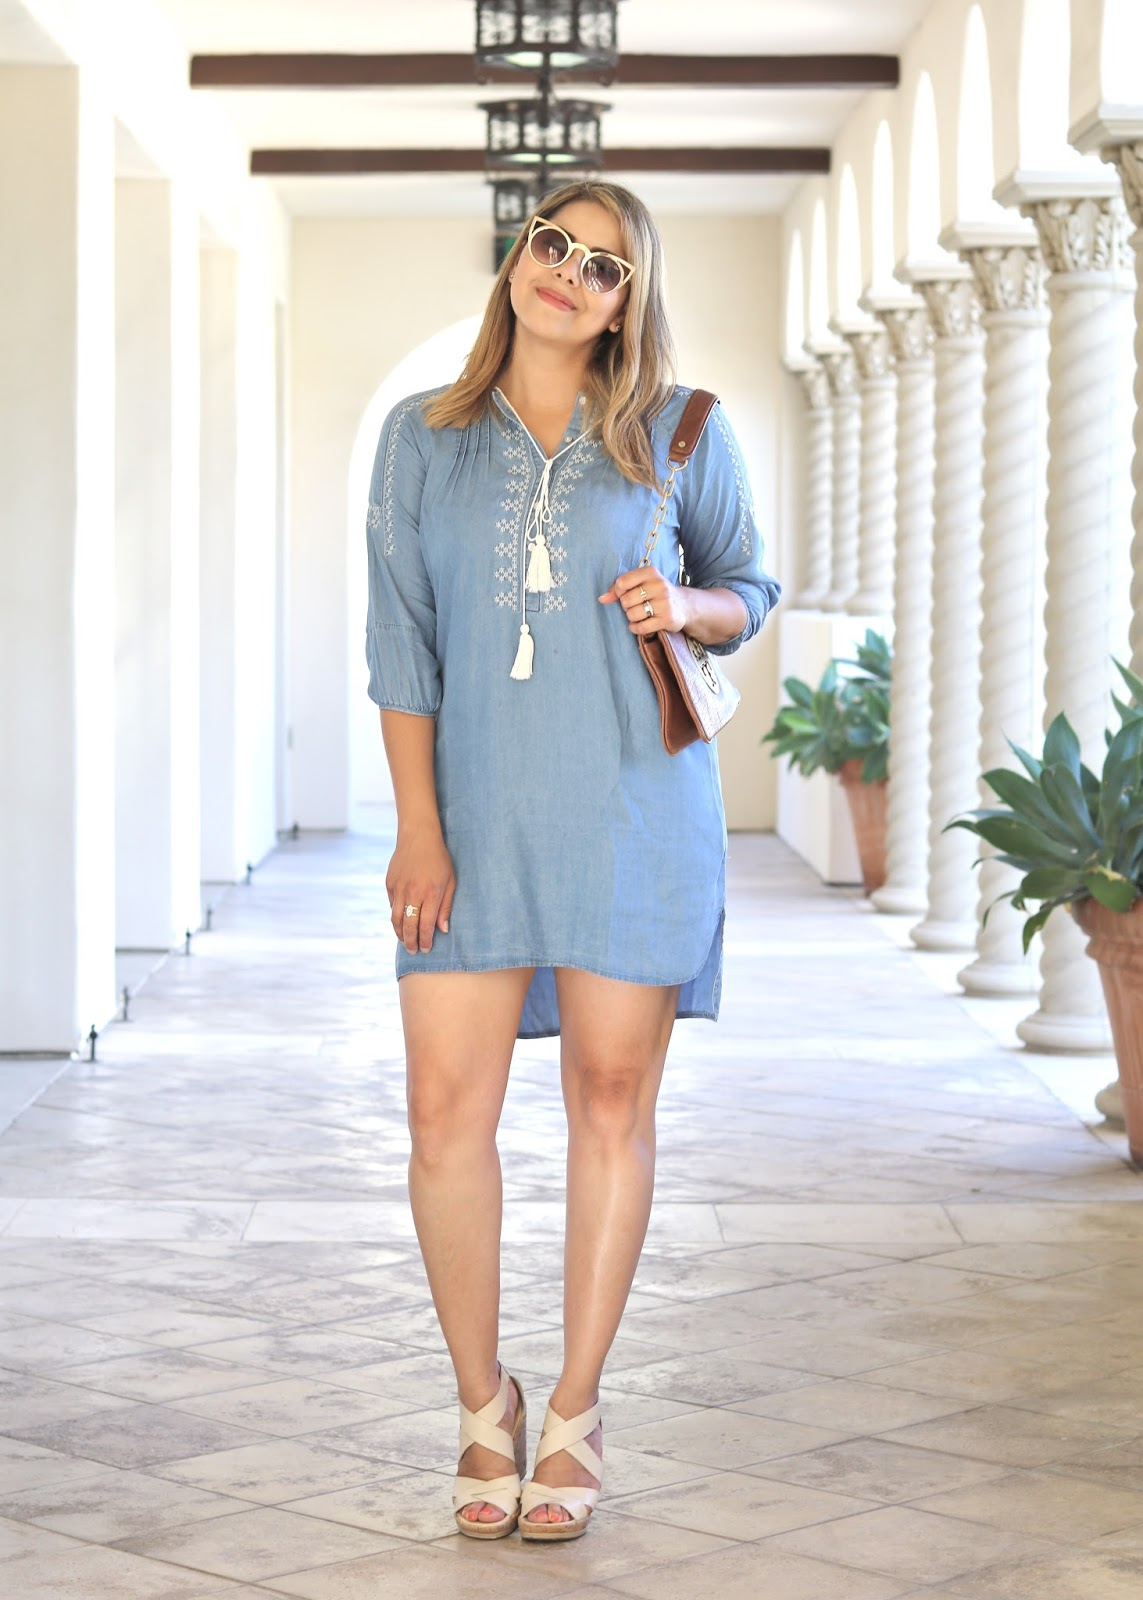 Little Denim Dress, San Diego fashion blogger, san diego style blogger, san diego blogger